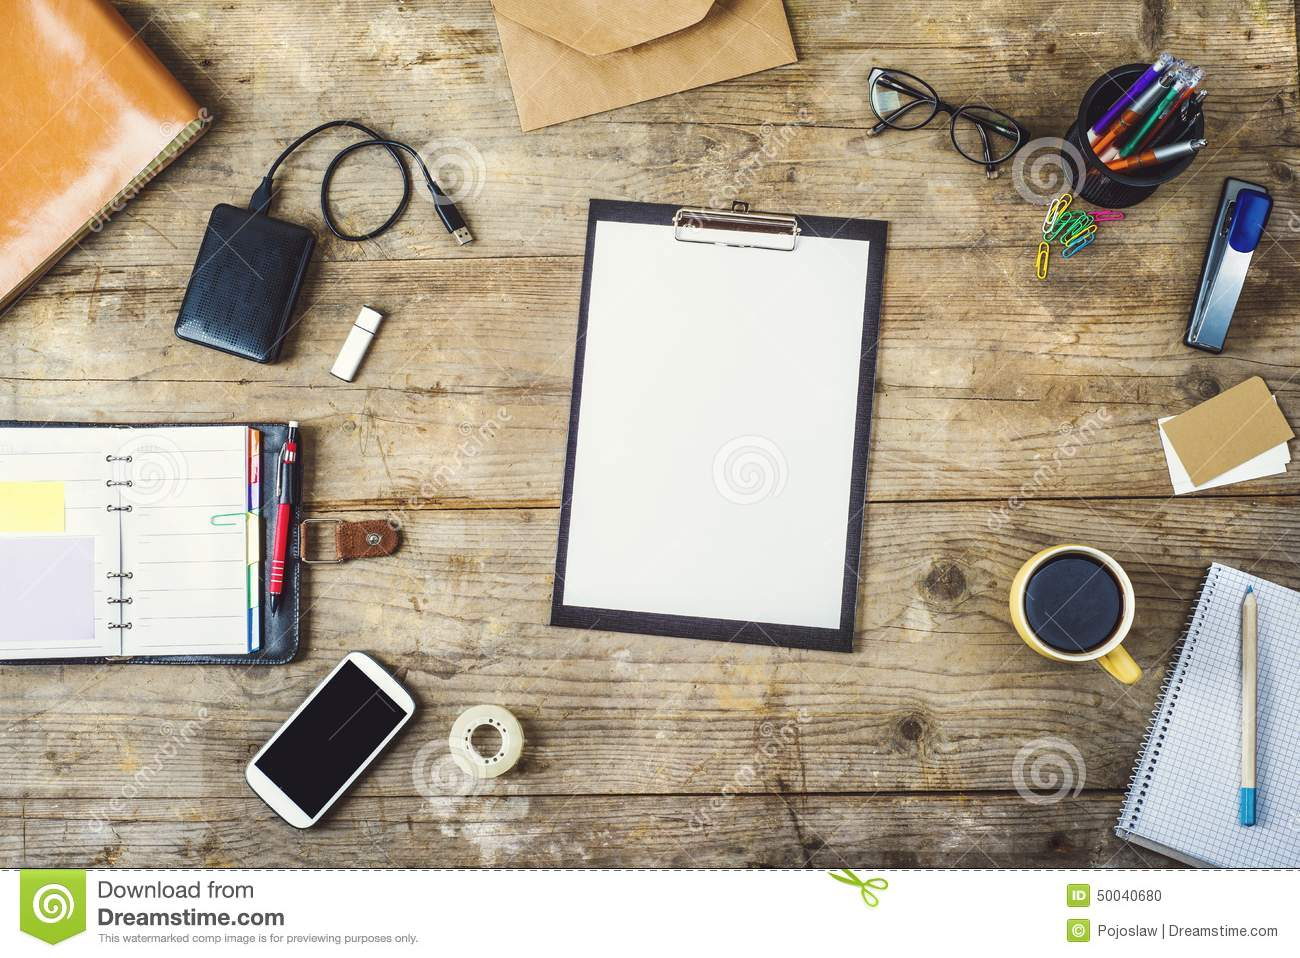 Desktop Mix On A Wooden Office Table. Stock Photo - Image: 50040680